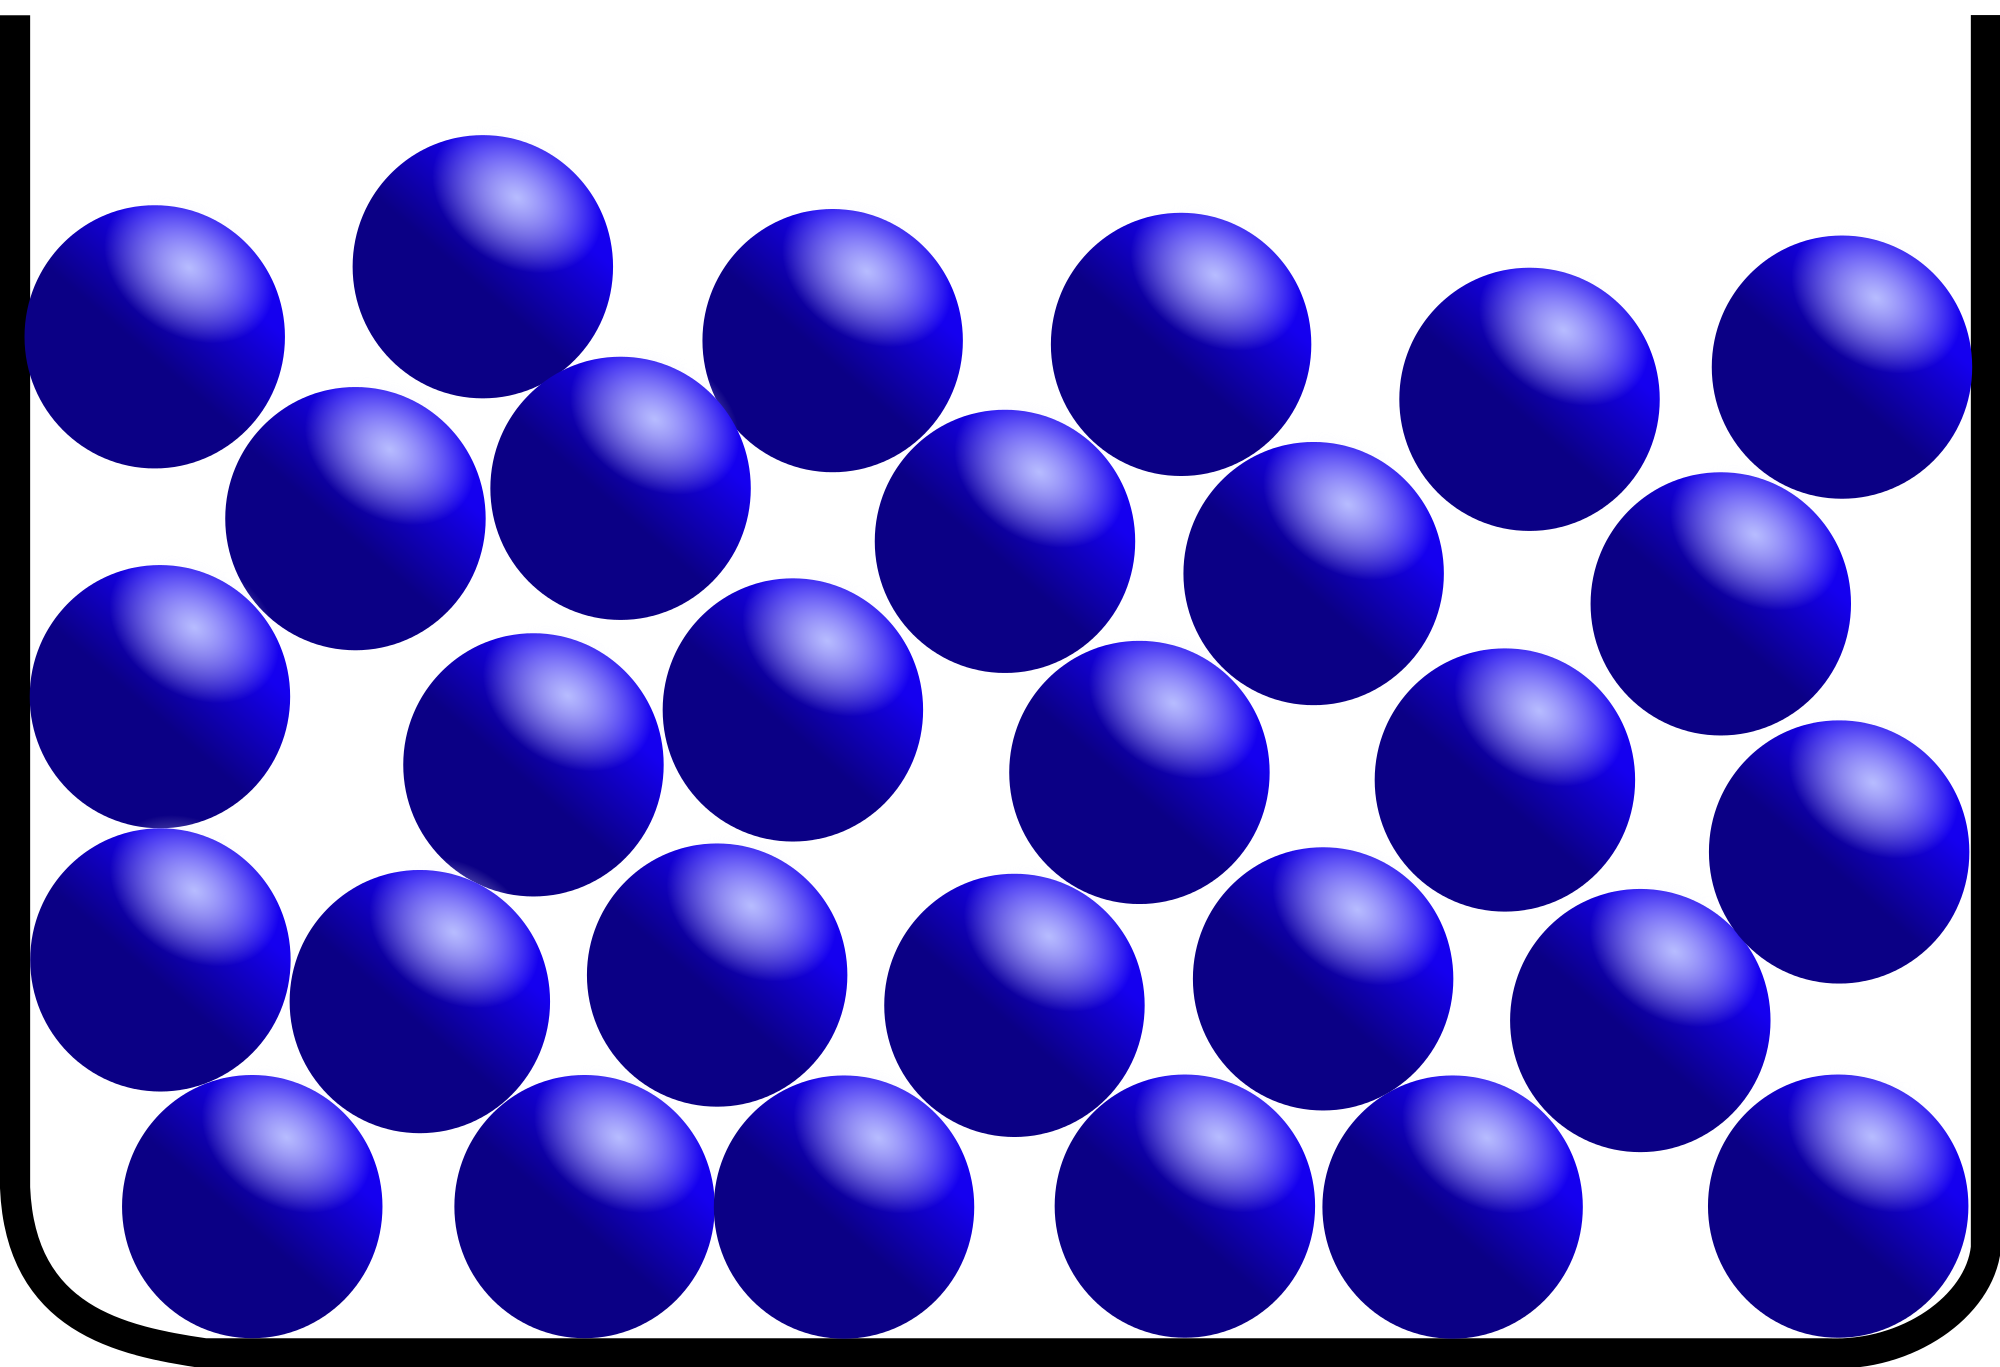 Properties of matter eng. Gas clipart gas particle